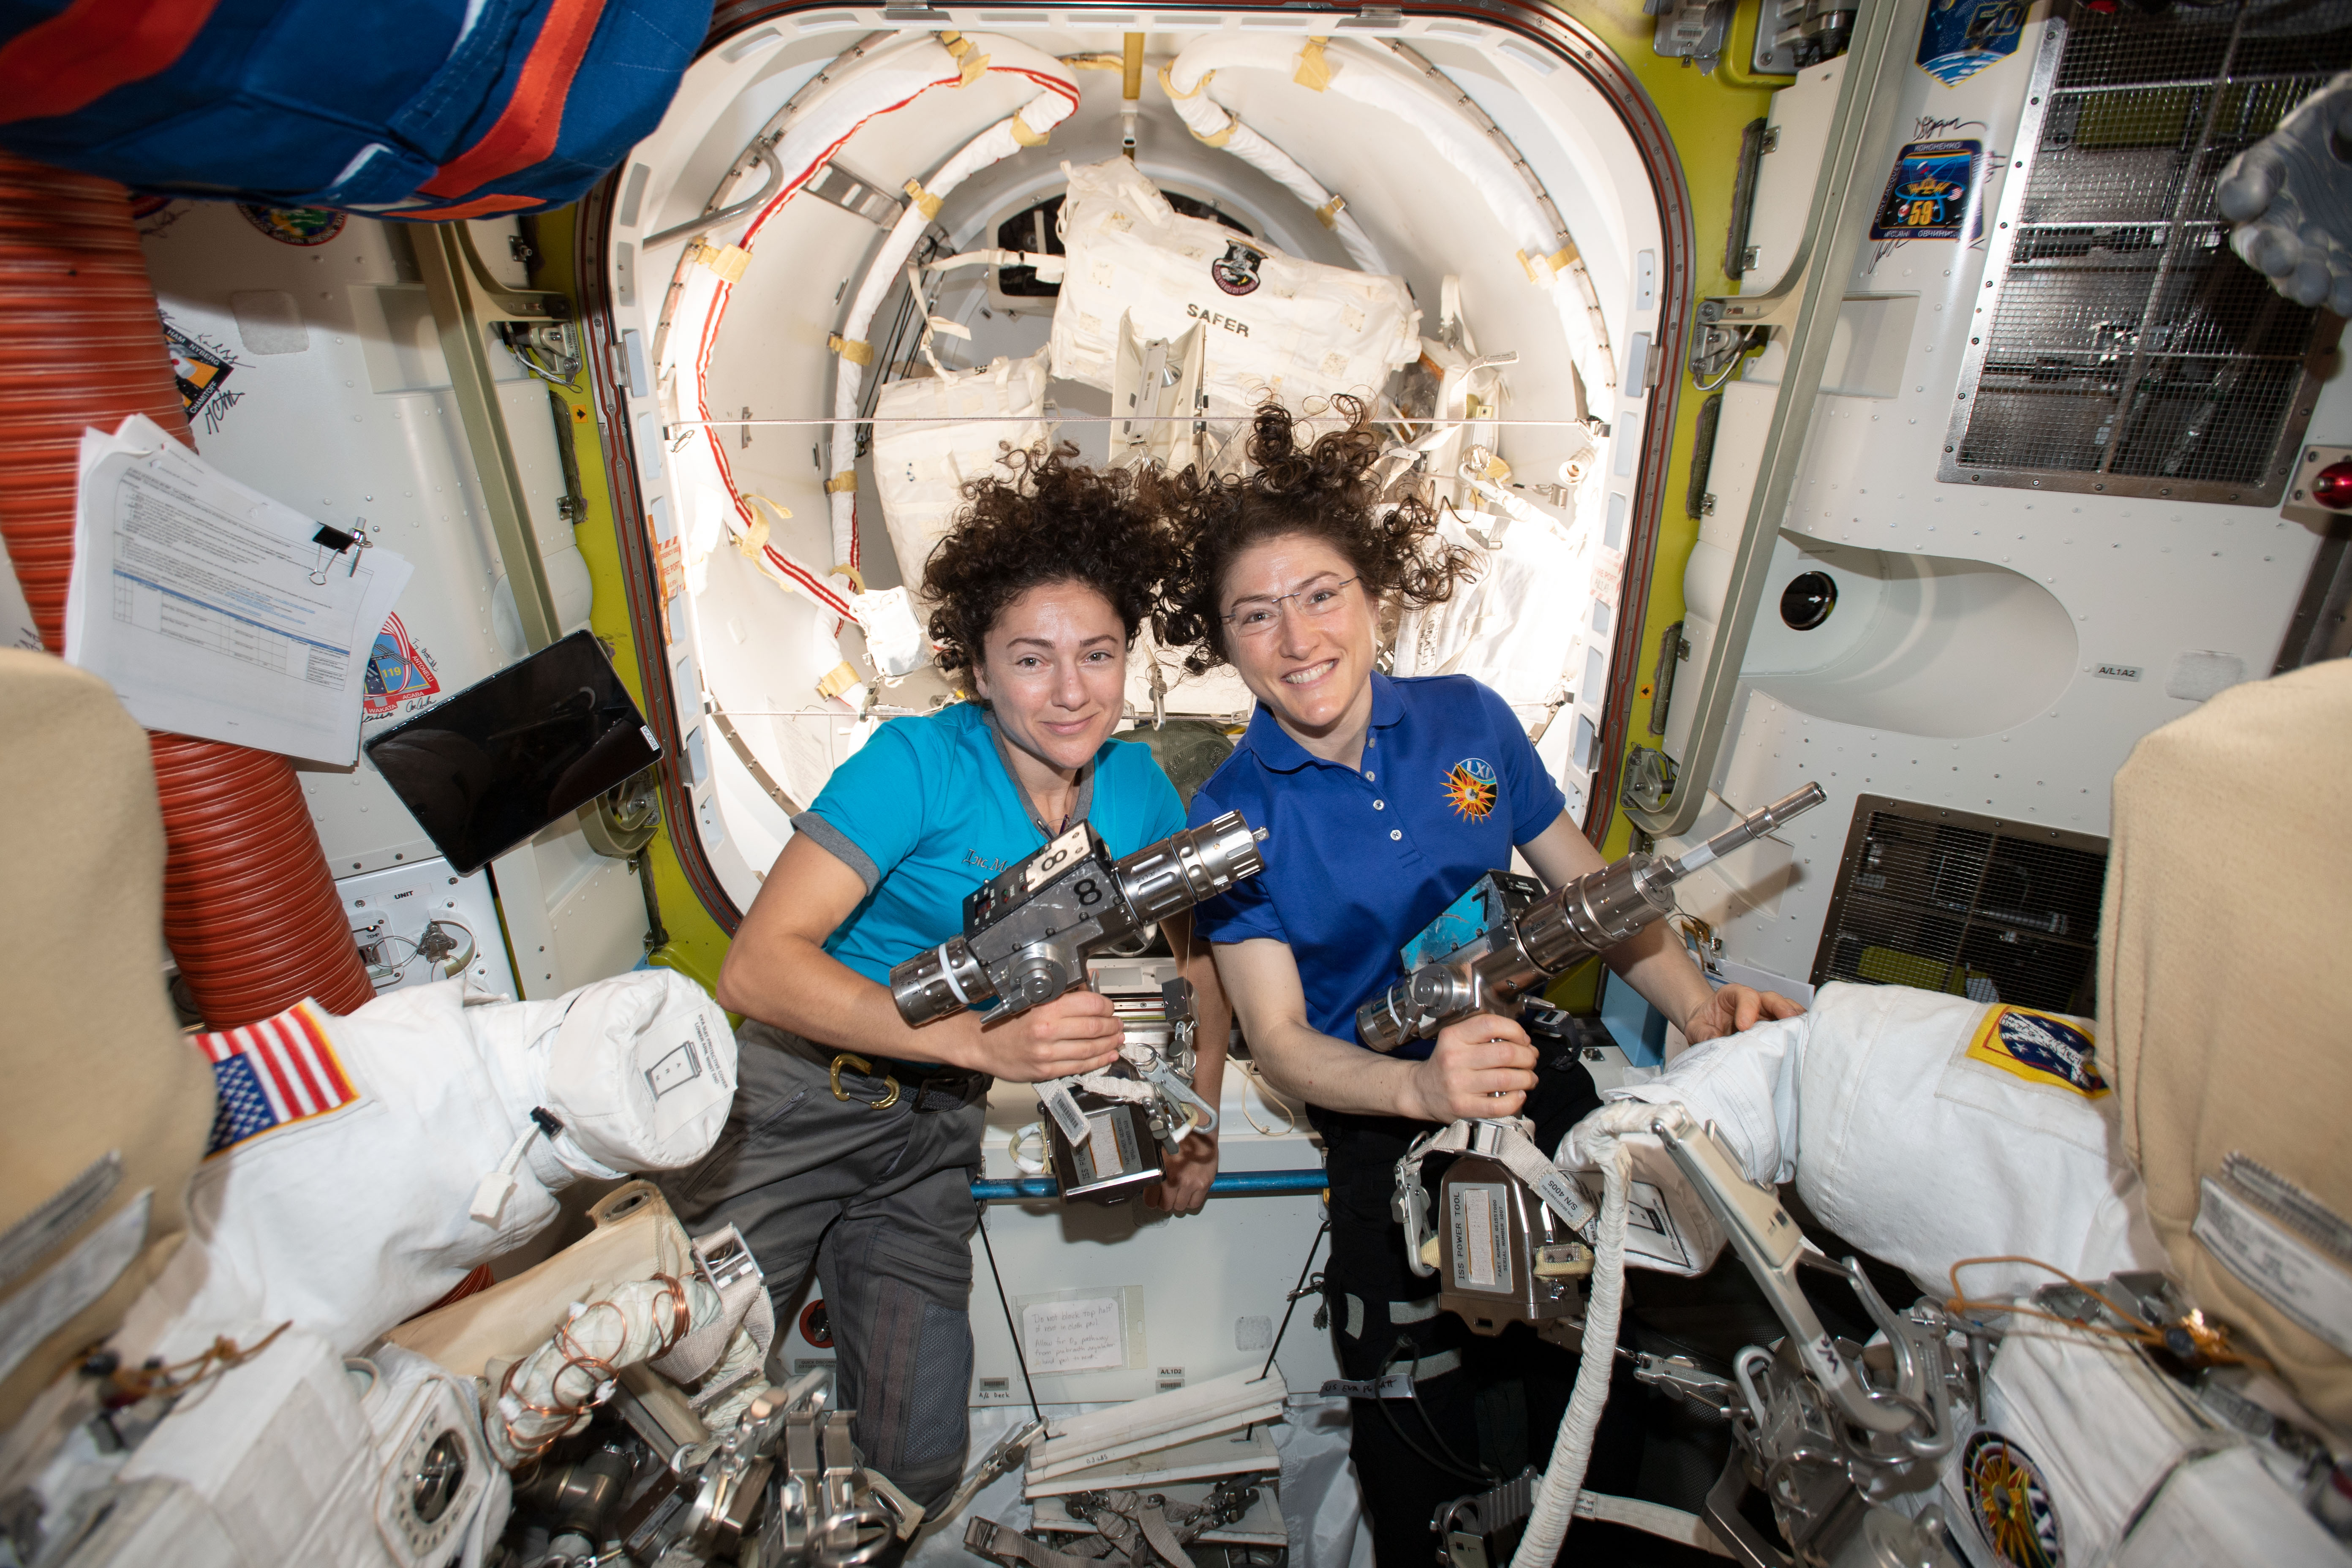 NASA astronauts Jessica Meir (left) and Christina Koch inside the Quest airlock preparing the U.S. spacesuits and tools they will use on their first spacewalk together.